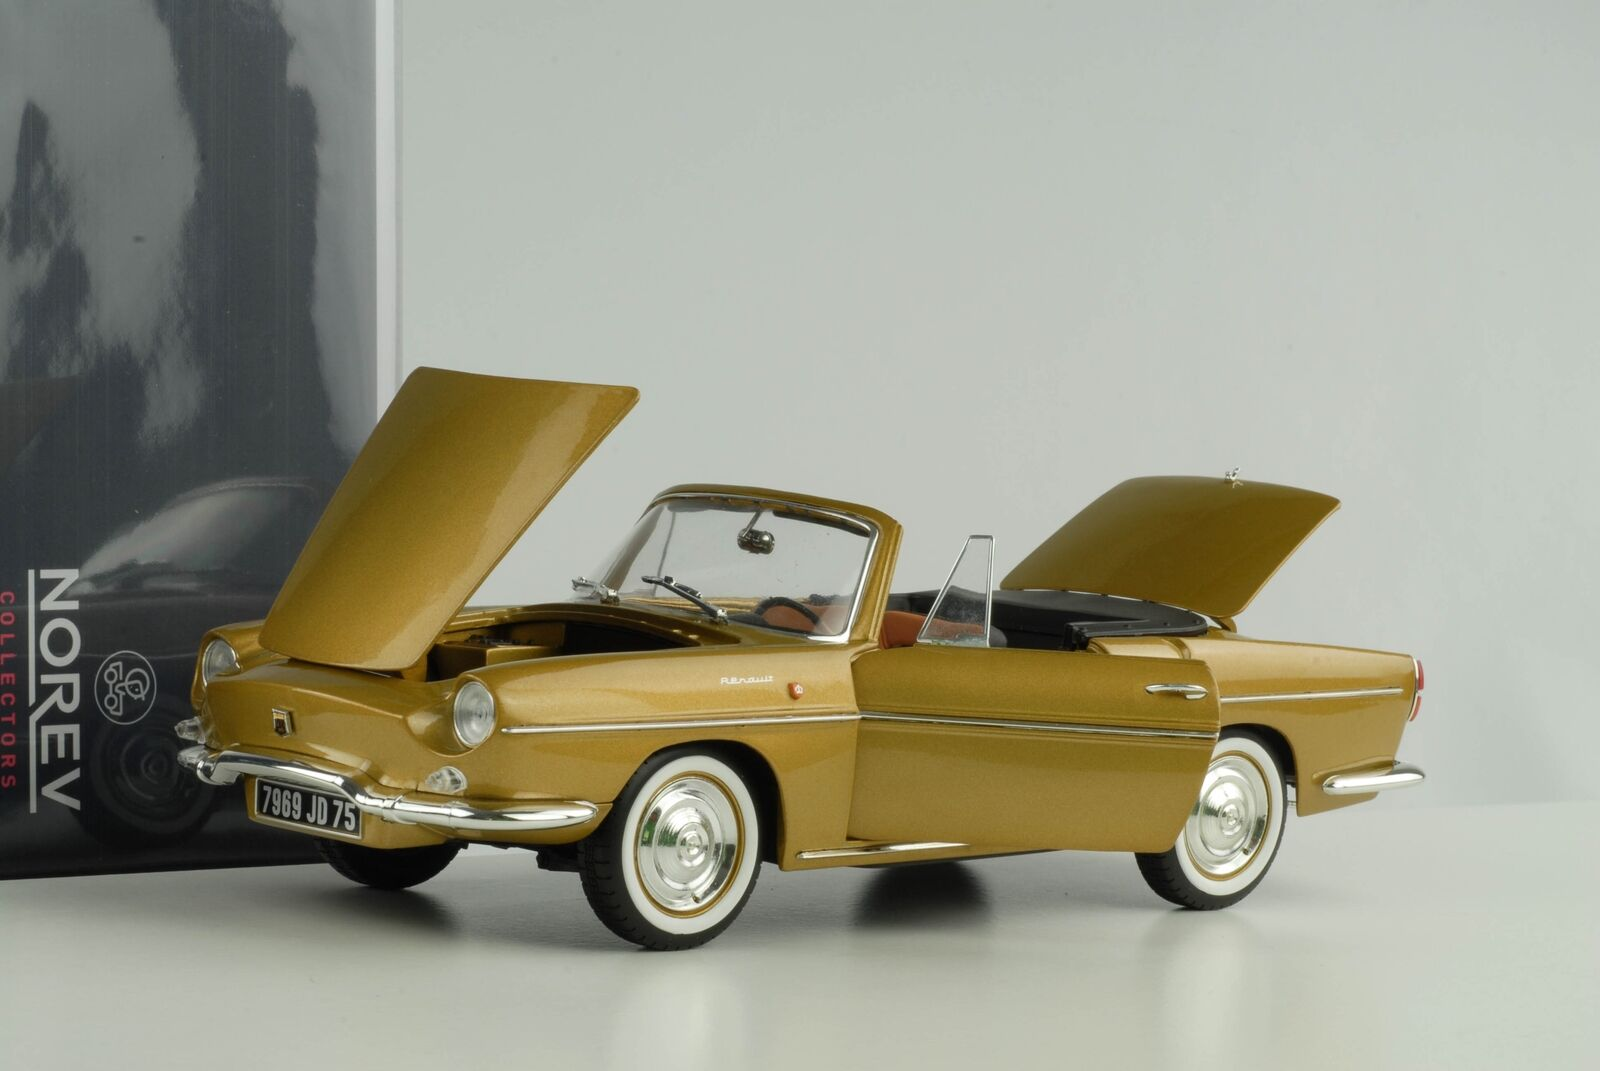 Renault − with Roof 1959 Bahama jaune 1 18 Norev  Diecast 185182  réductions incroyables